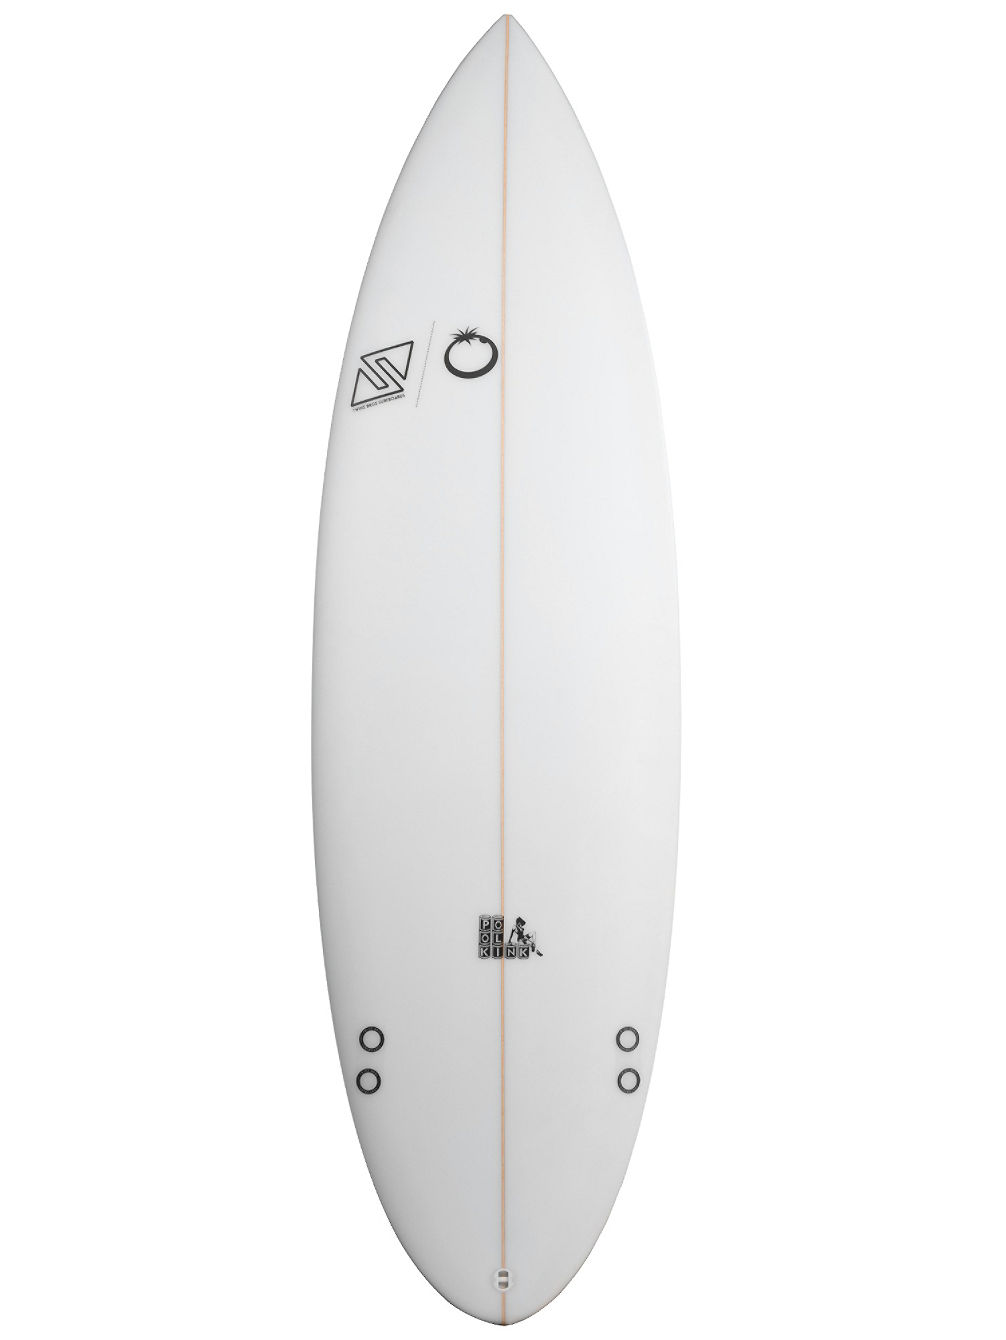 Pool Kink PU 5.7 Surfboard